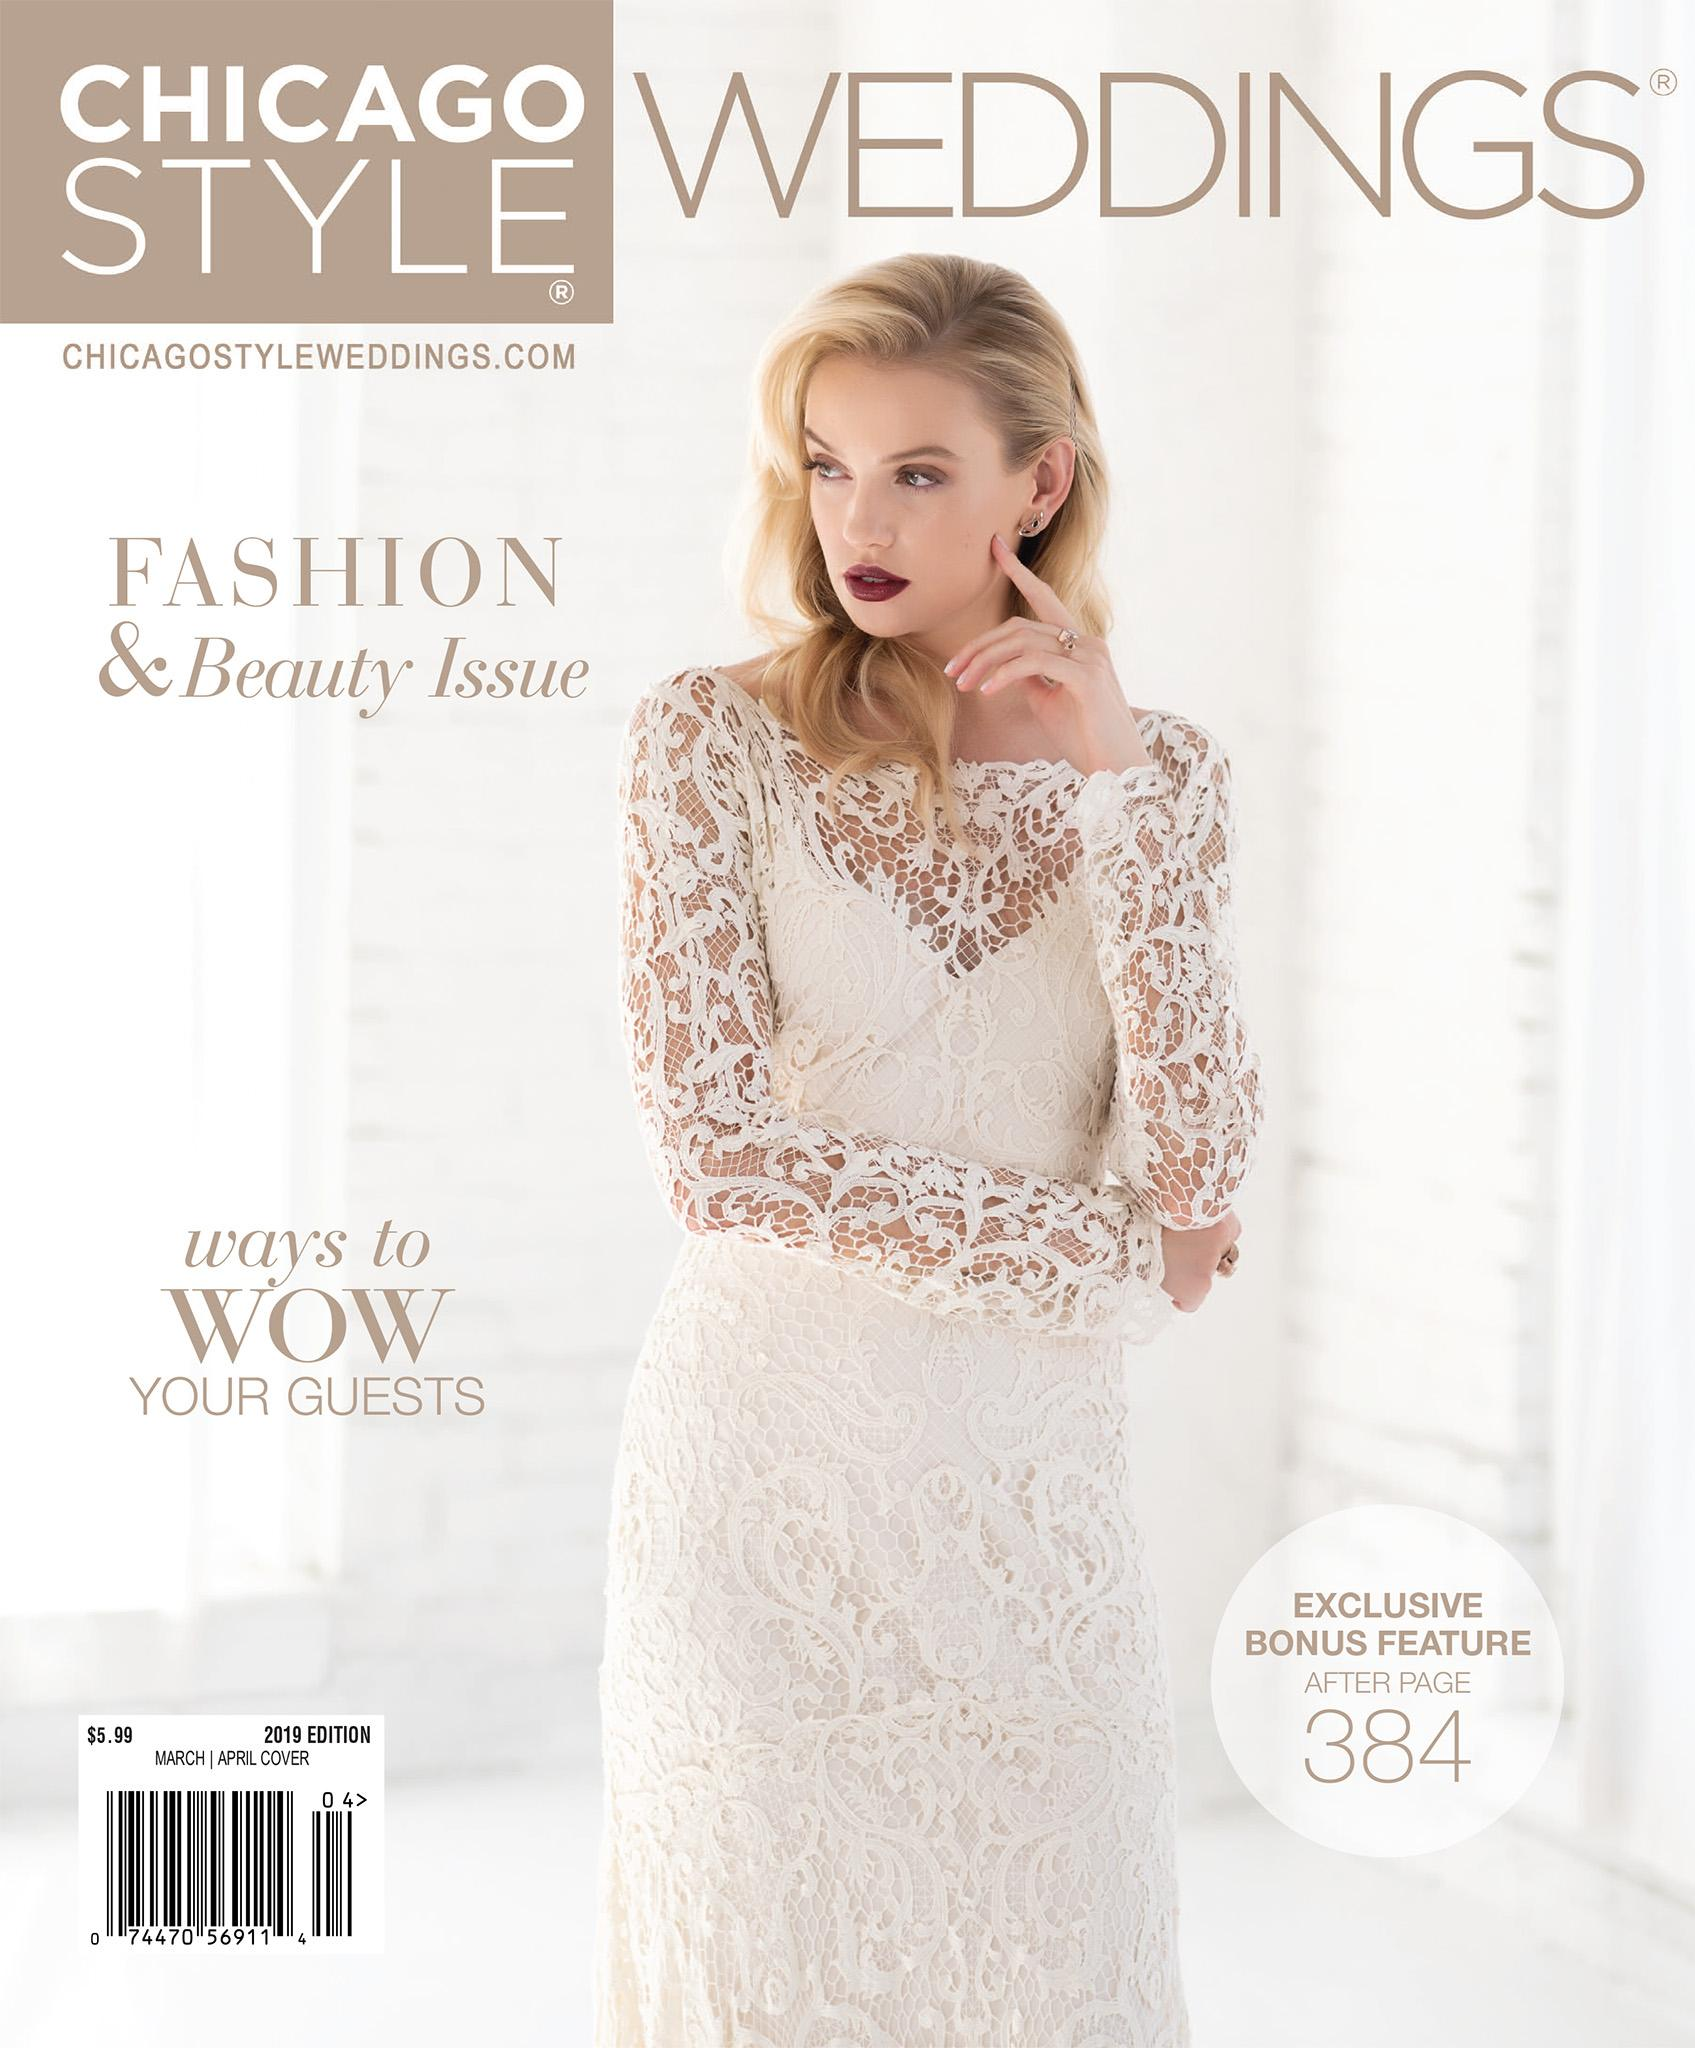 ChicagoStyle Weddings - July 2018 - March / April 2019 Issue